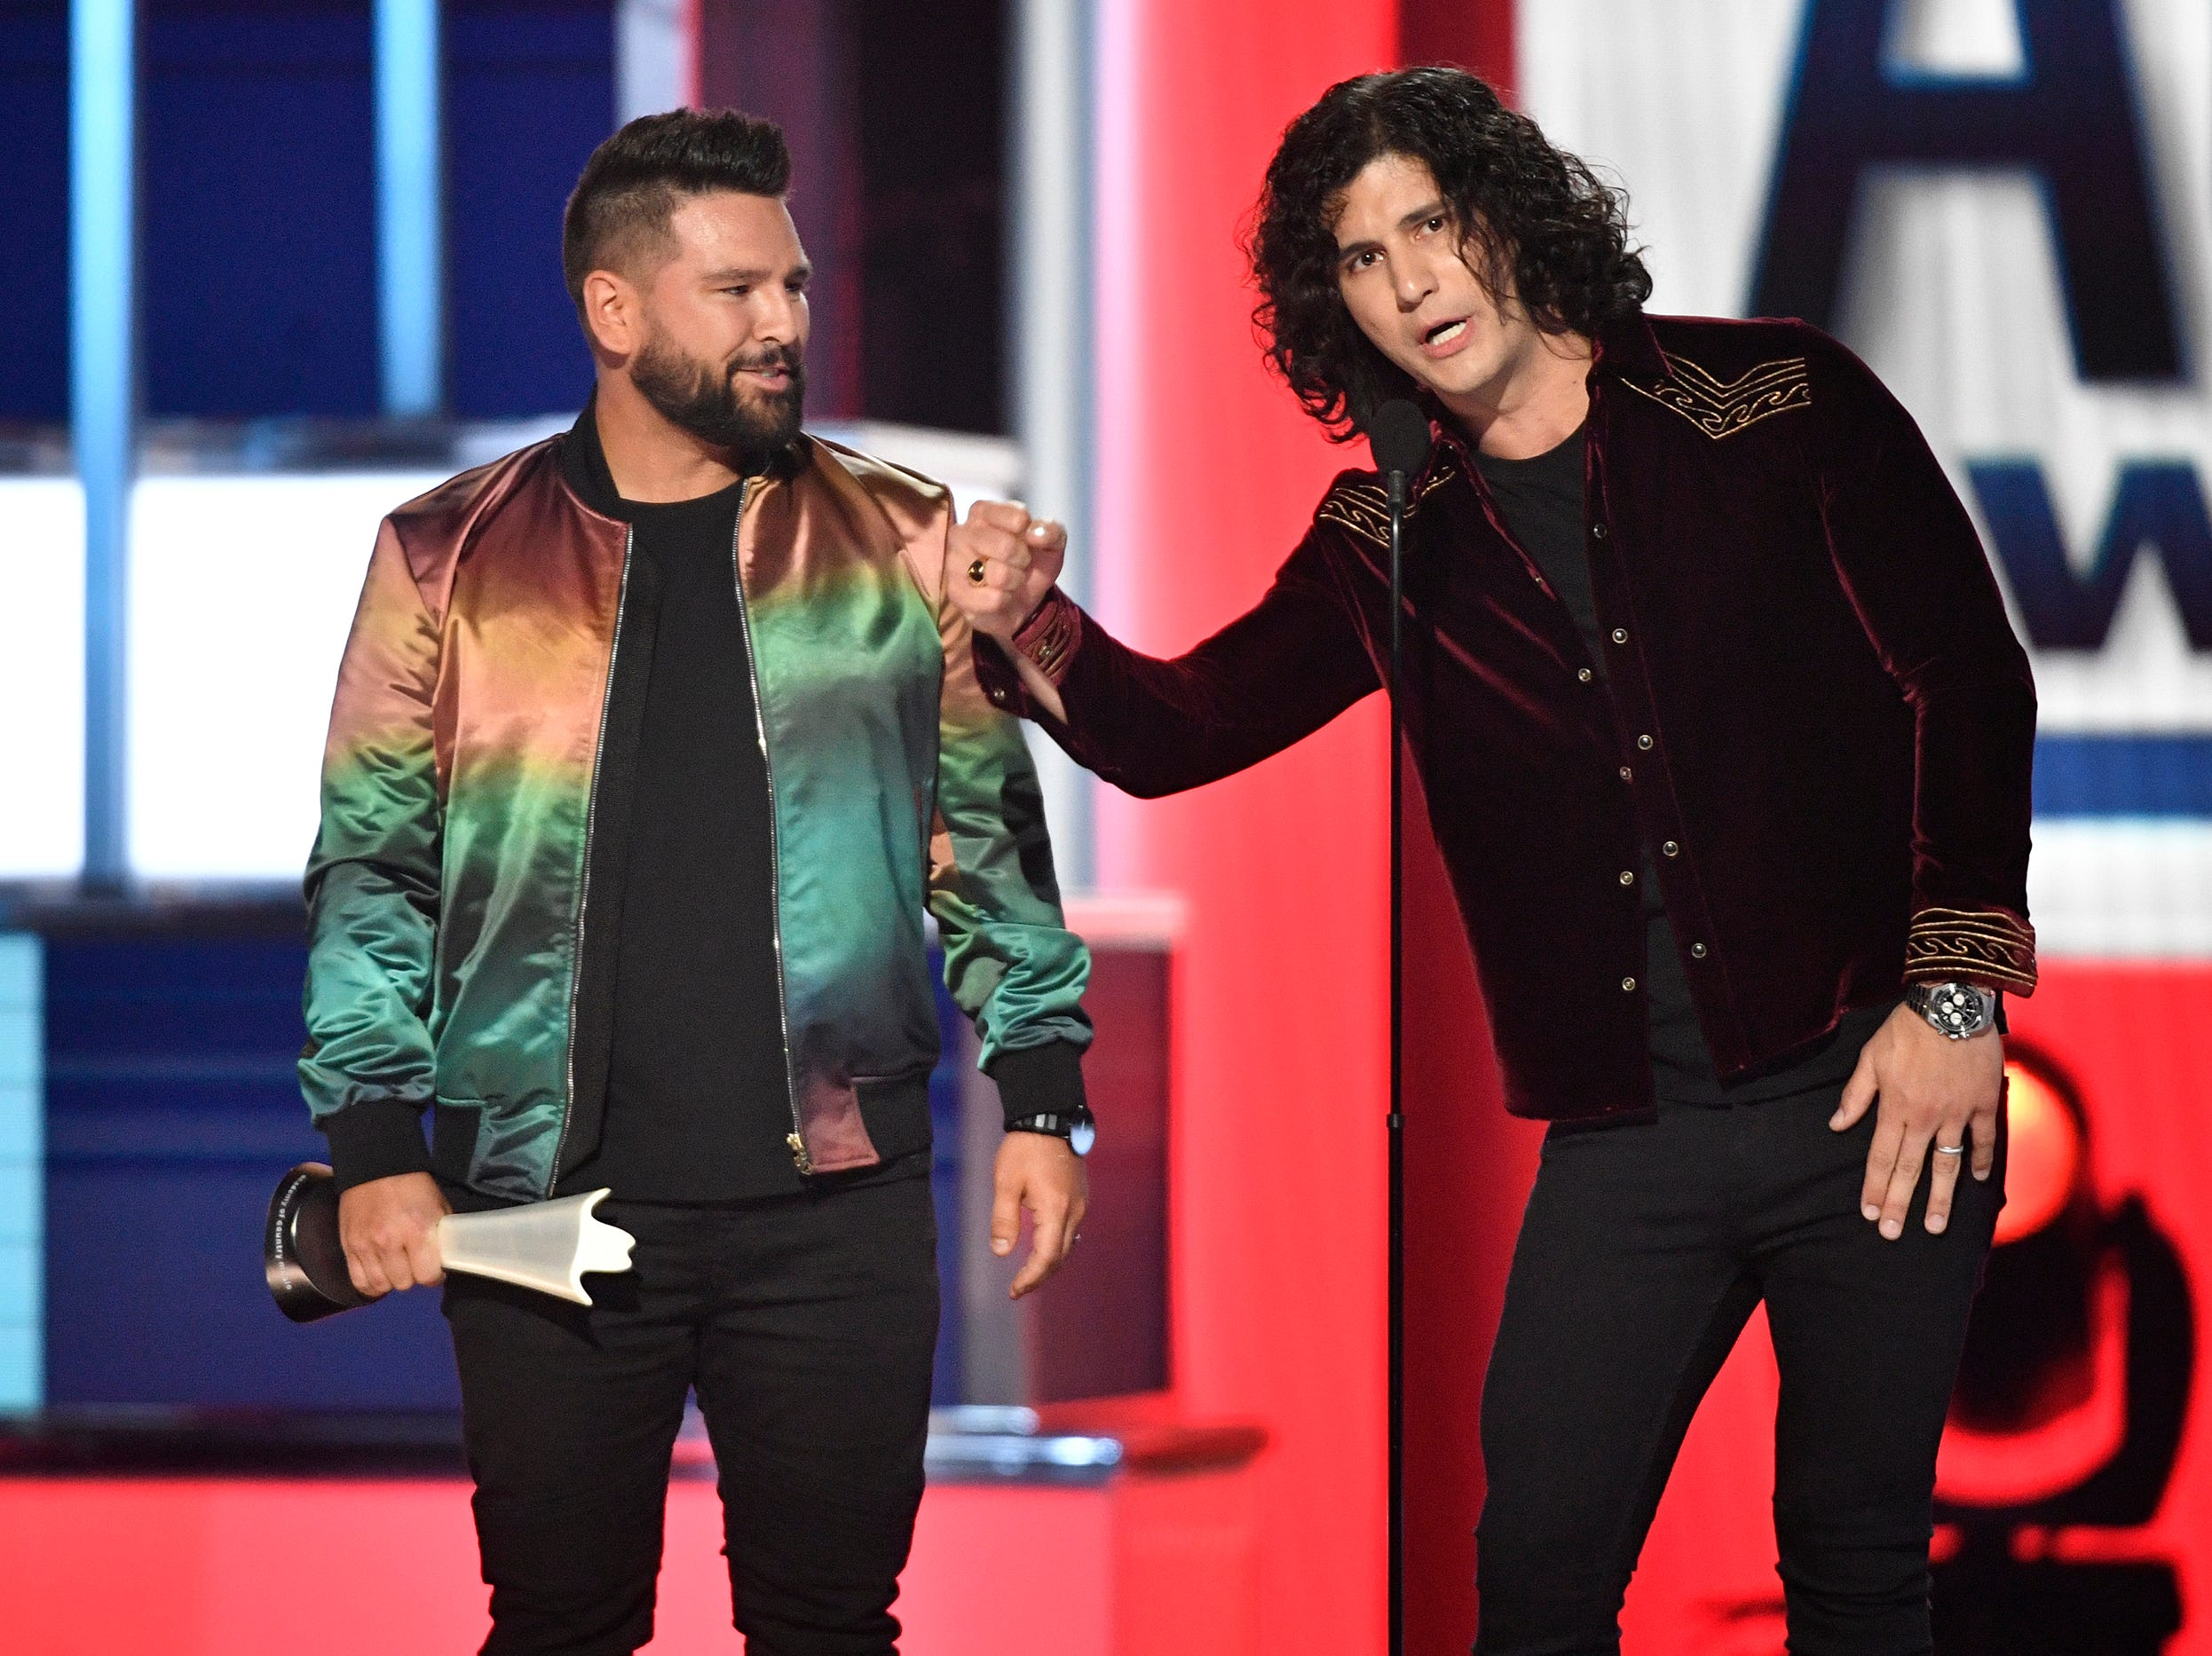 Shay Mooney, left, and Dan Smyers of Dan + Shay, accept the Duo of the Year award during the 54TH Academy of Country Music Awards Sunday, April 7, 2019, in Las Vegas, Nev.